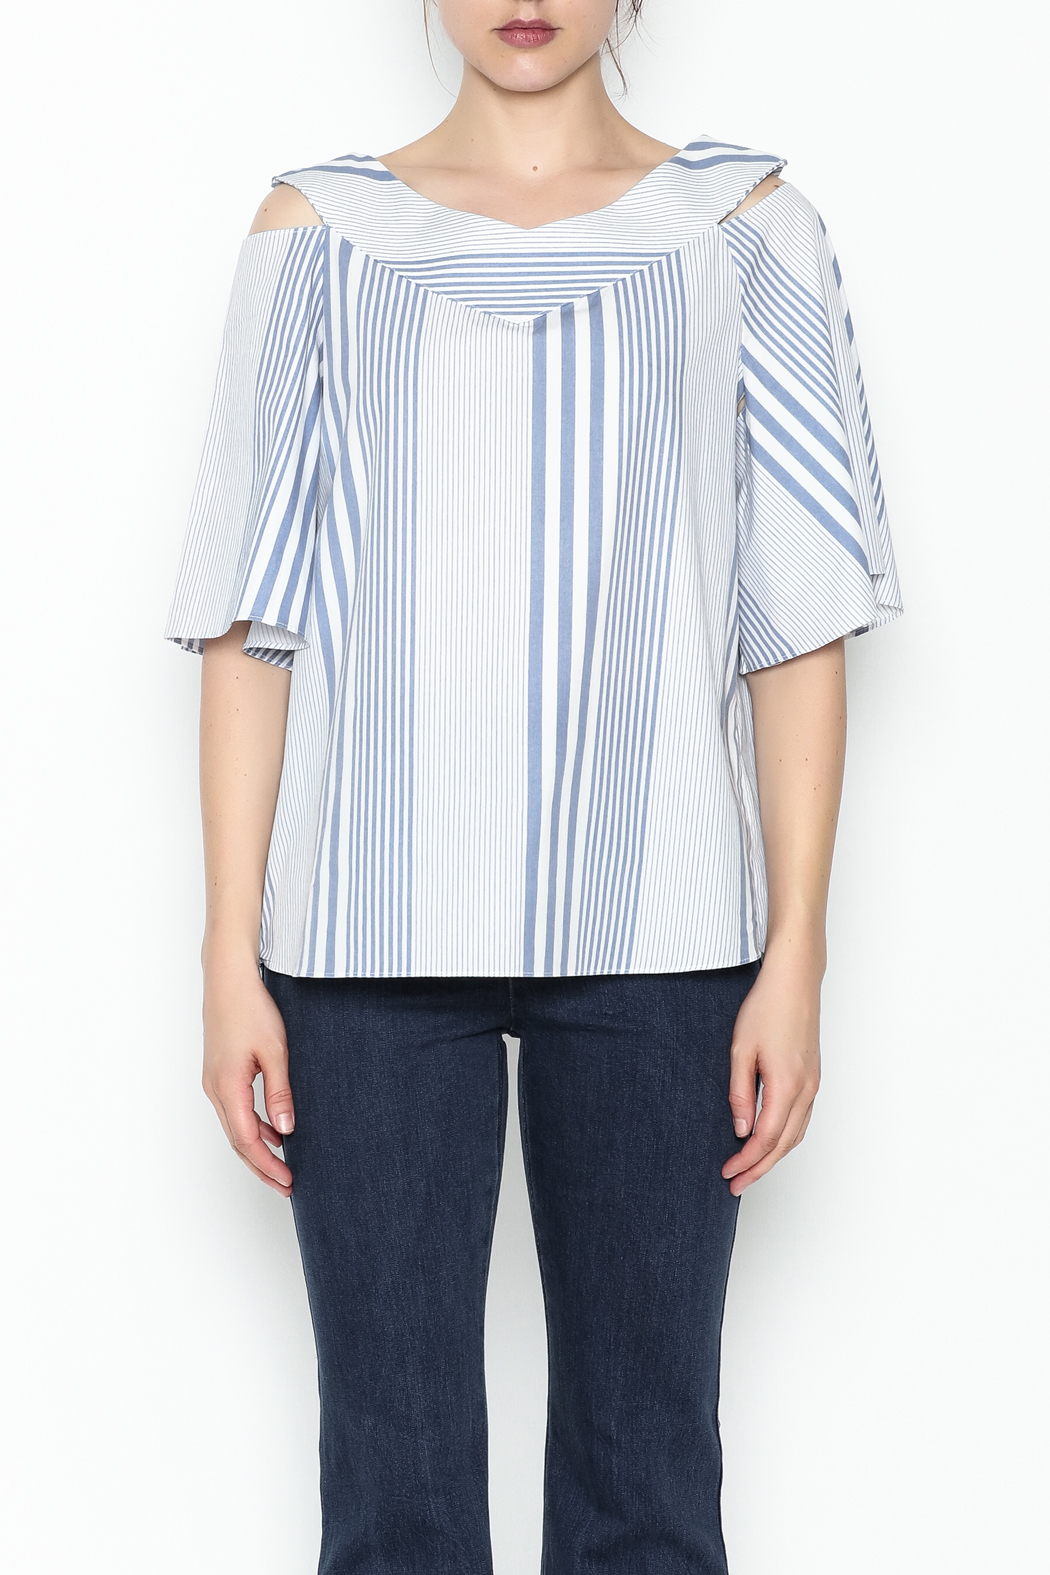 Pinkyotto Striped Ruffle Top - Front Full Image